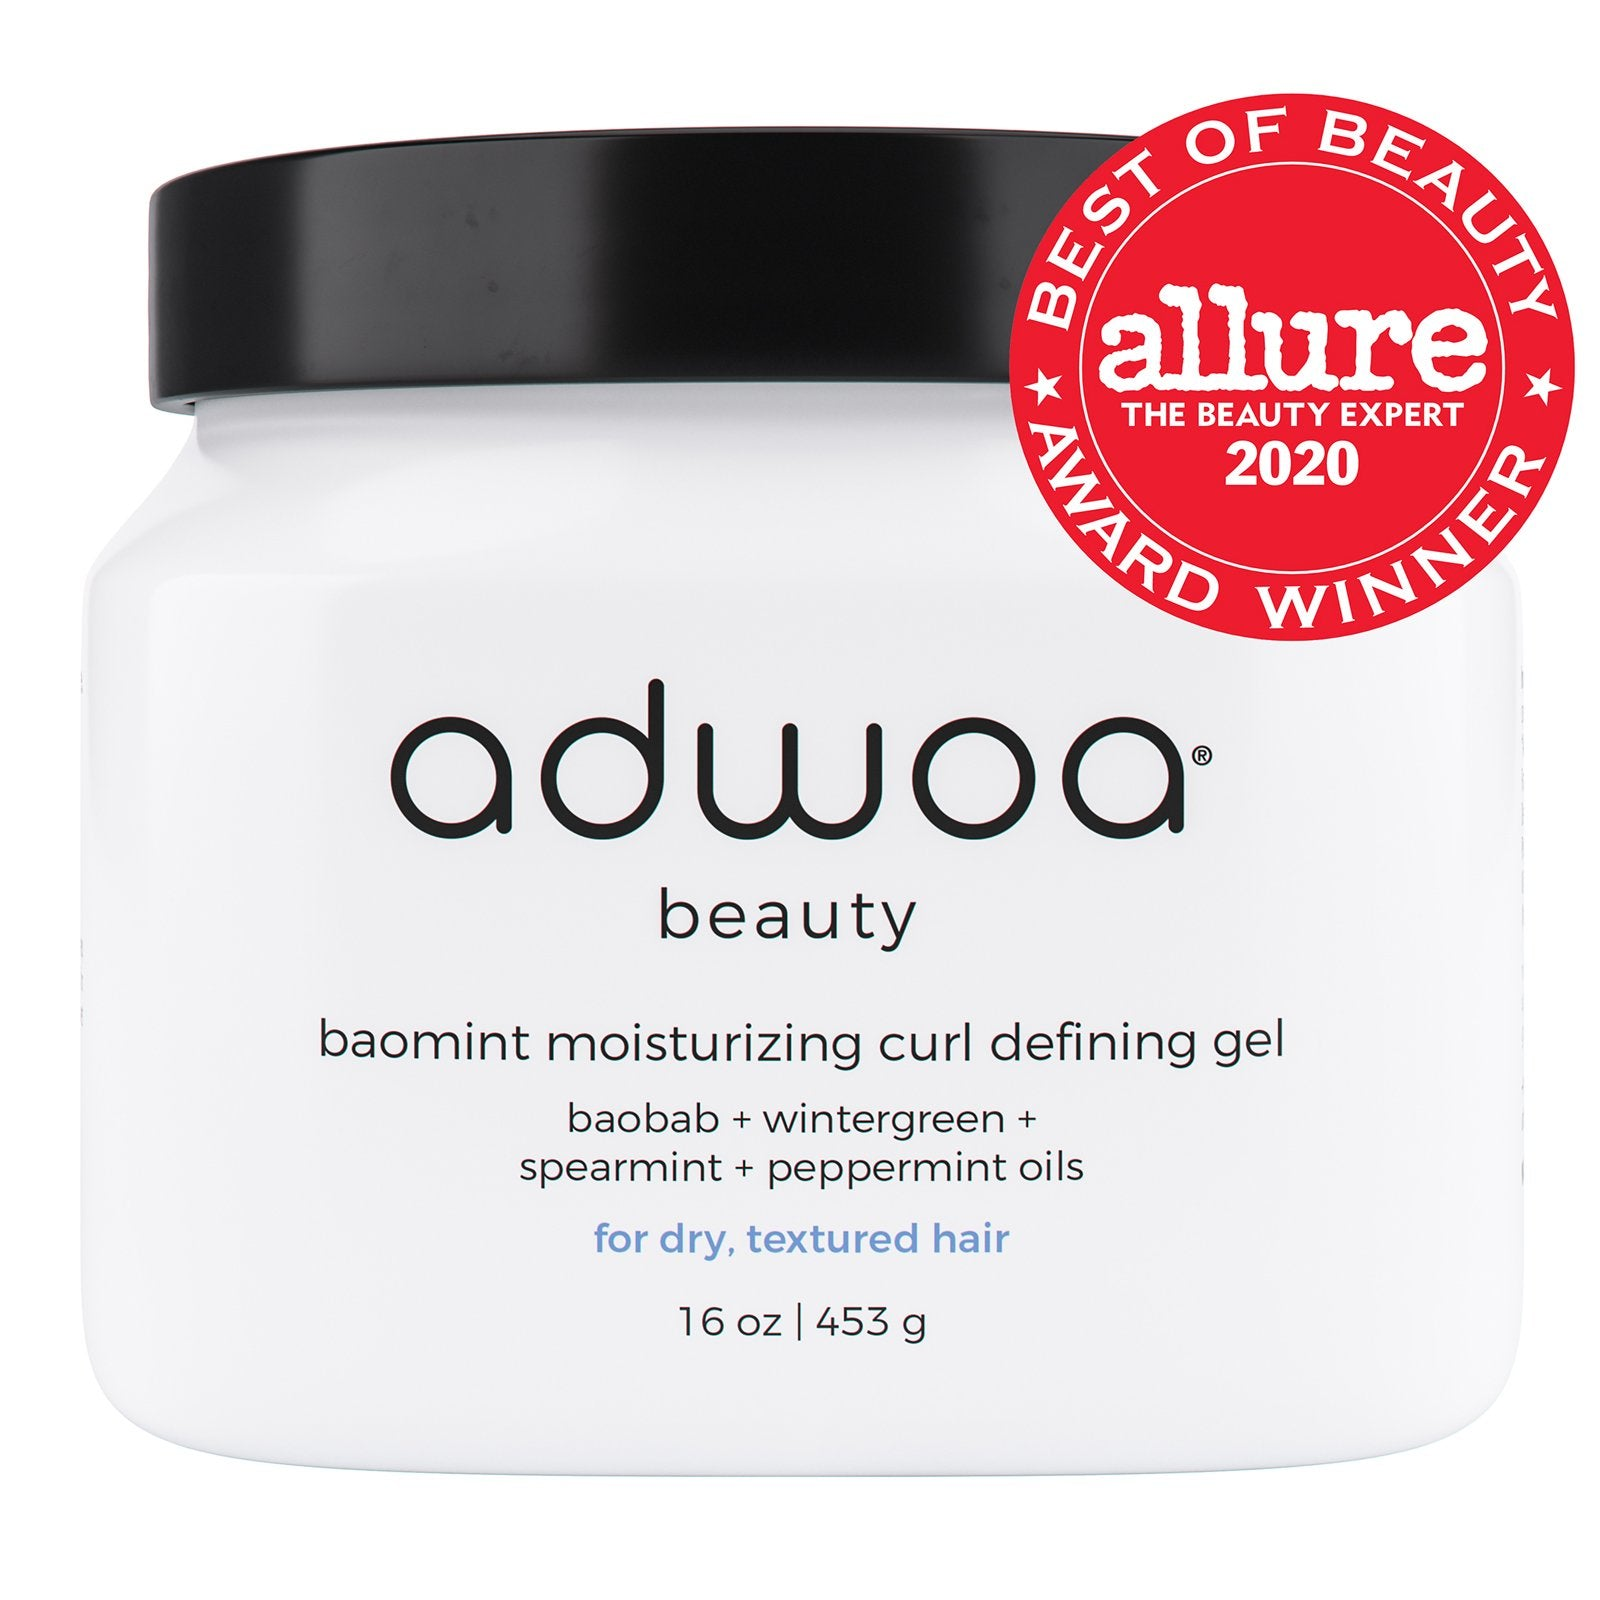 Adwoa Beauty Baomint Moisturizing Curl Defining Gel, 453g